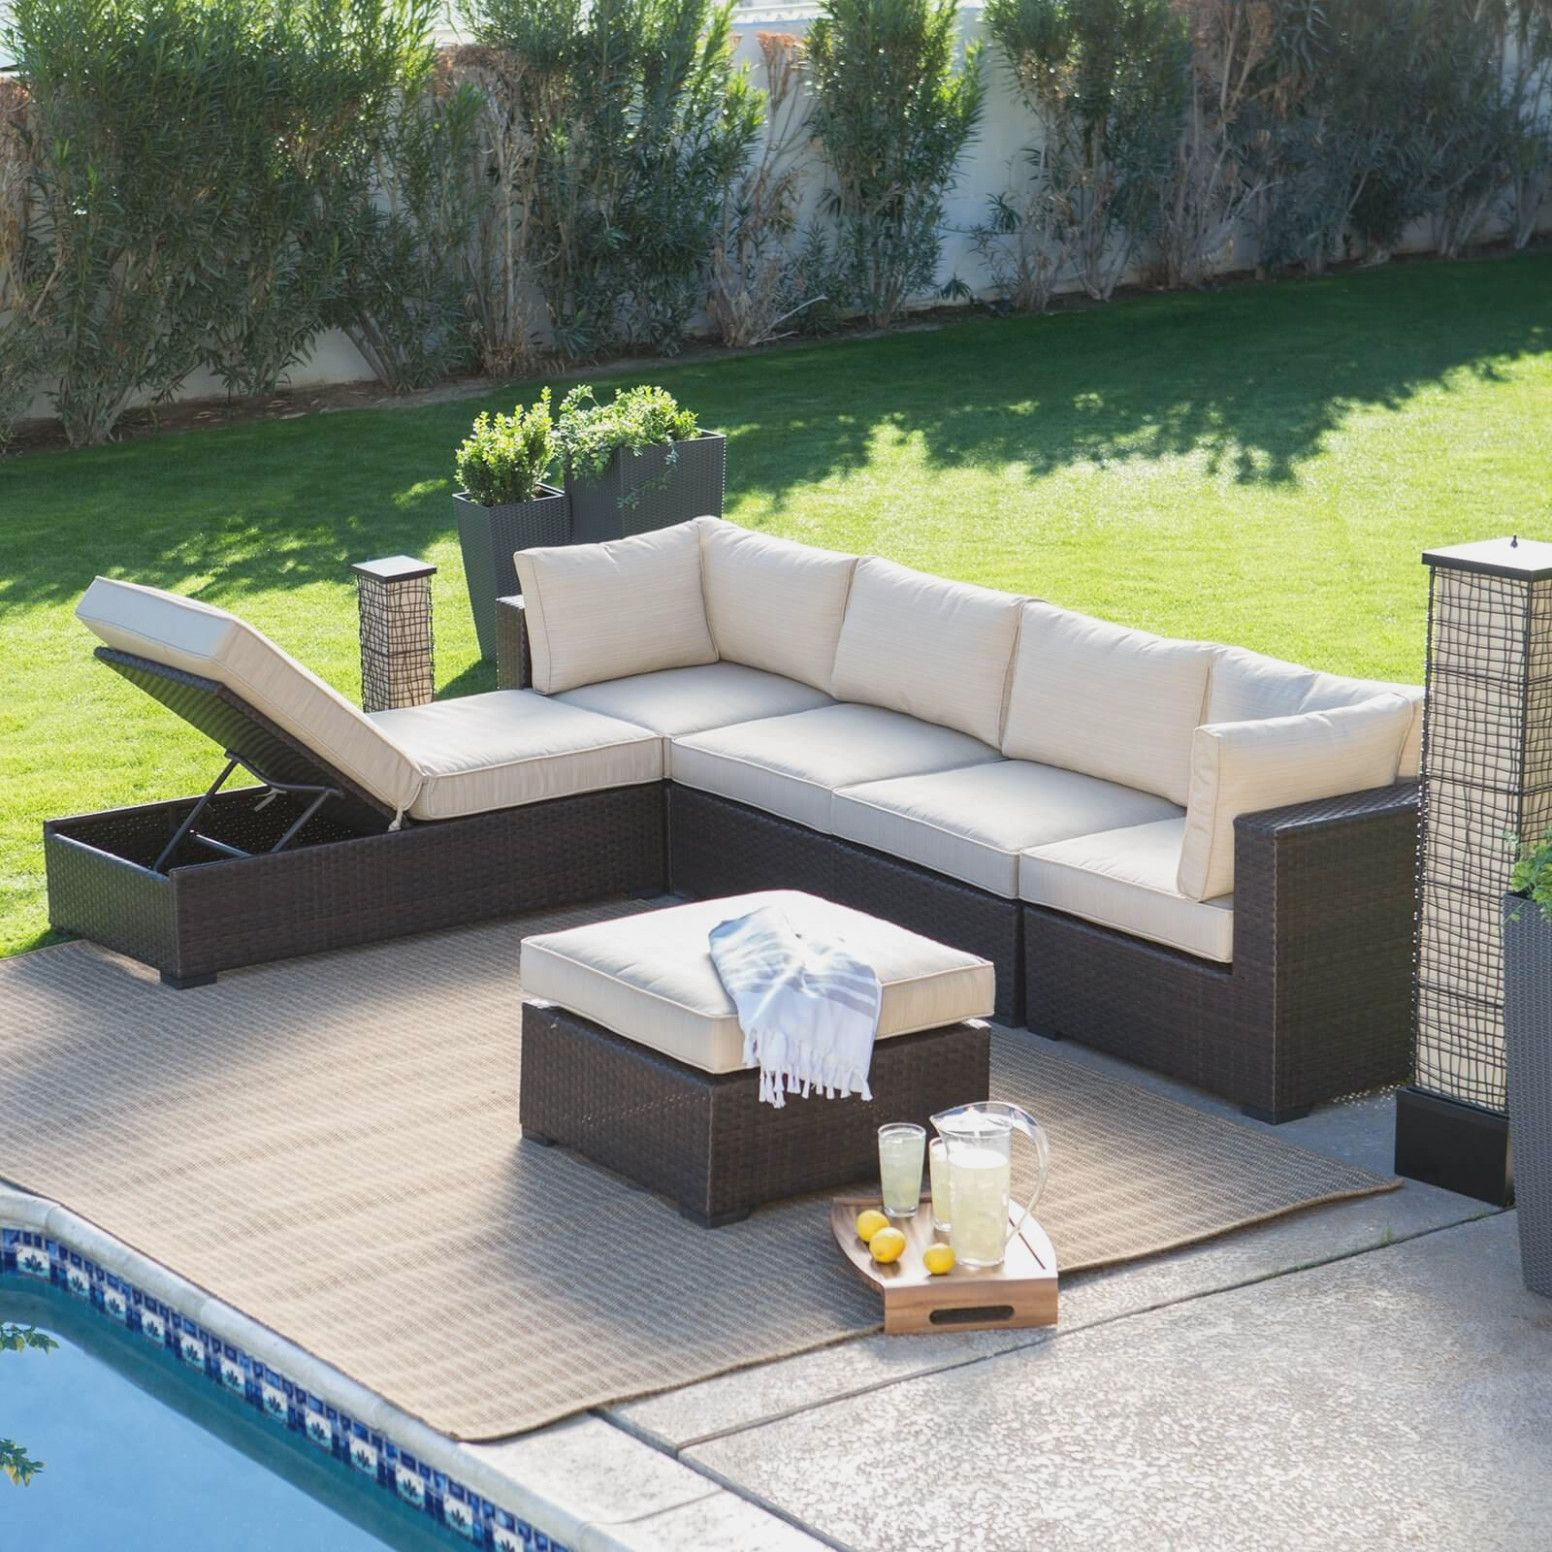 Affordable Patio Furniture Calgary